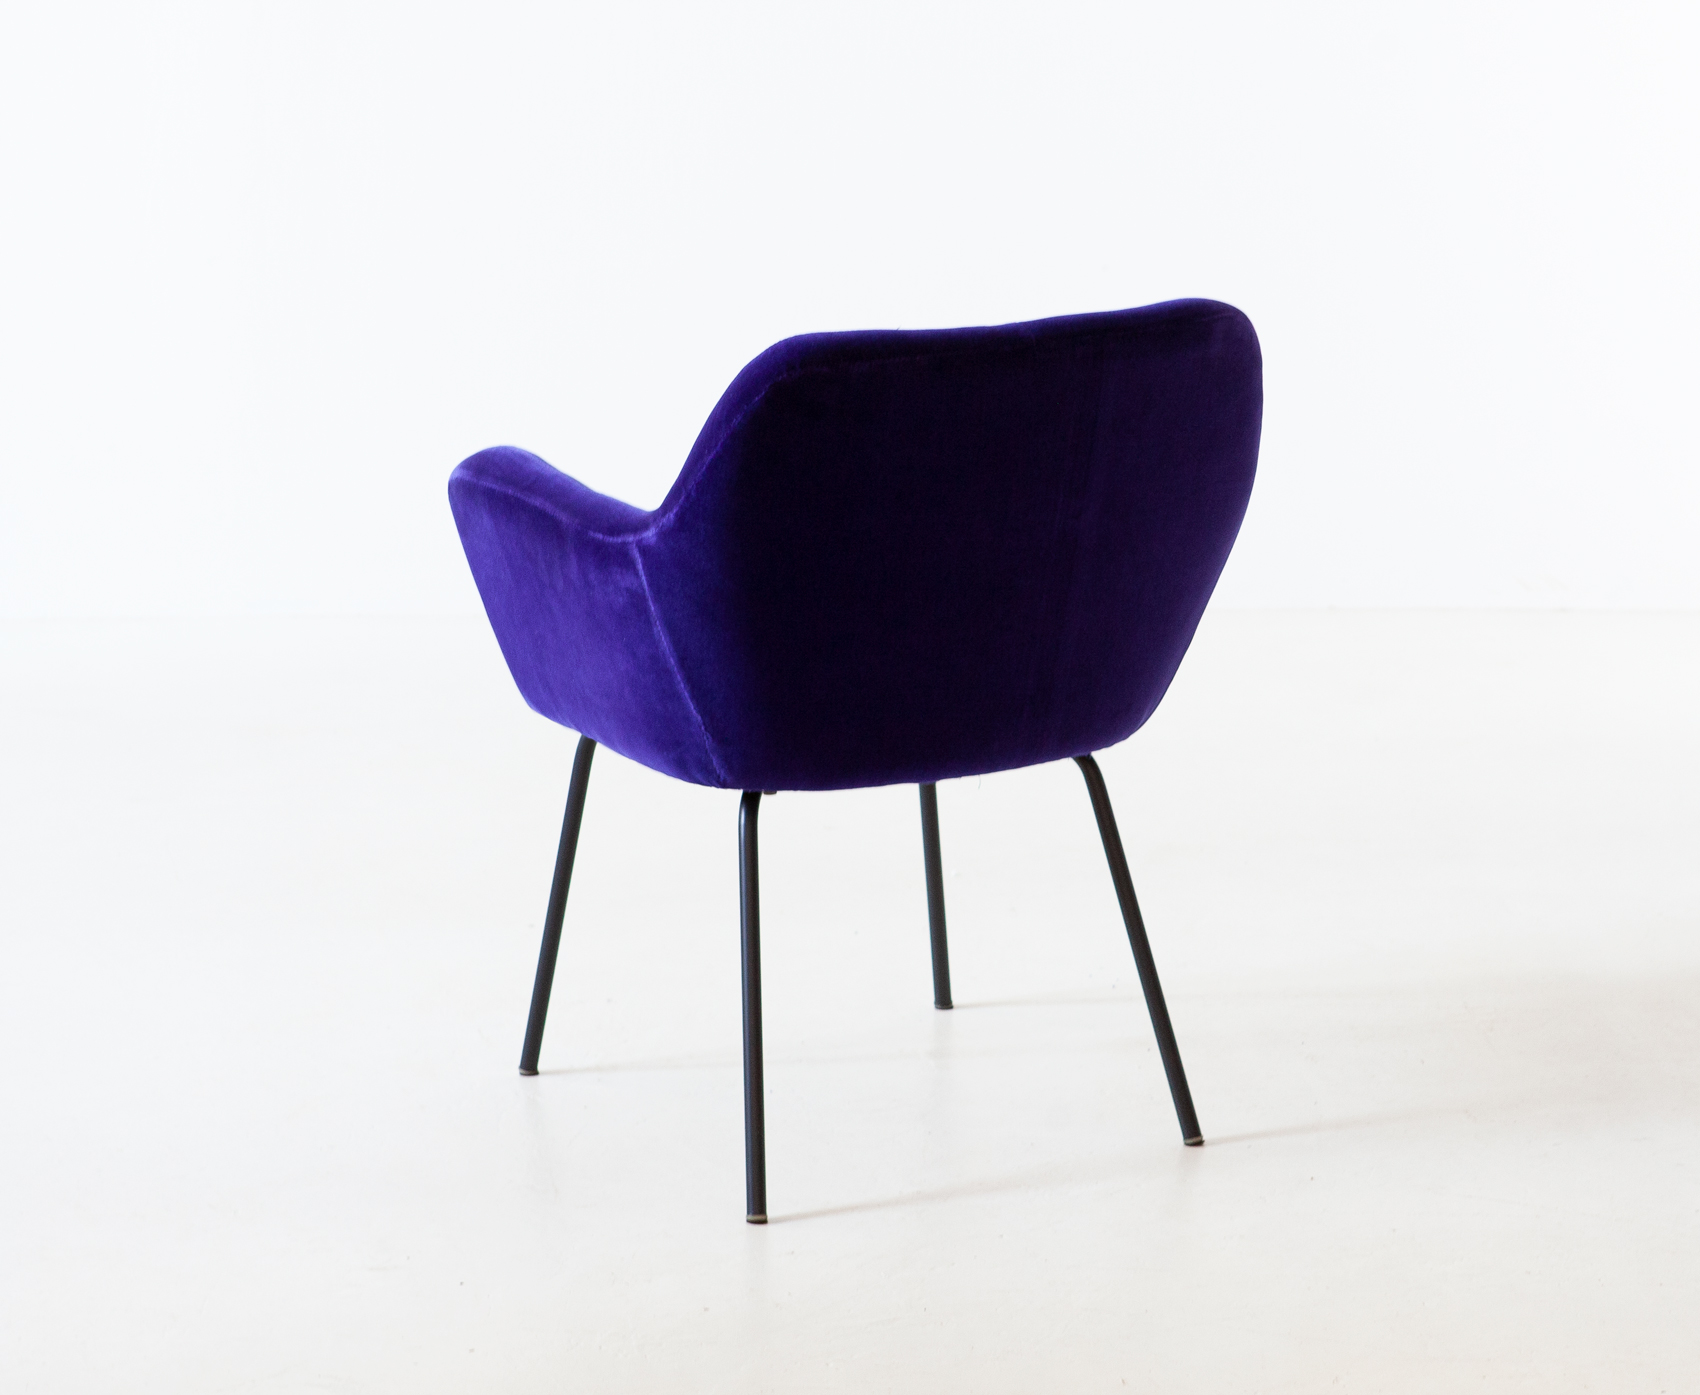 1950s-purle-velvet-armchair-by-studio-pfr-for--arflex-5-se318